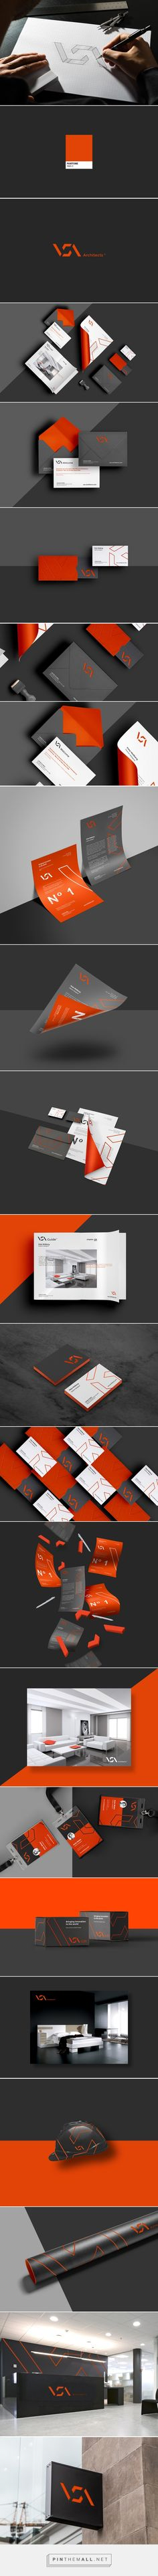 V S A Architects on Behance - created via https://pinthemall.net